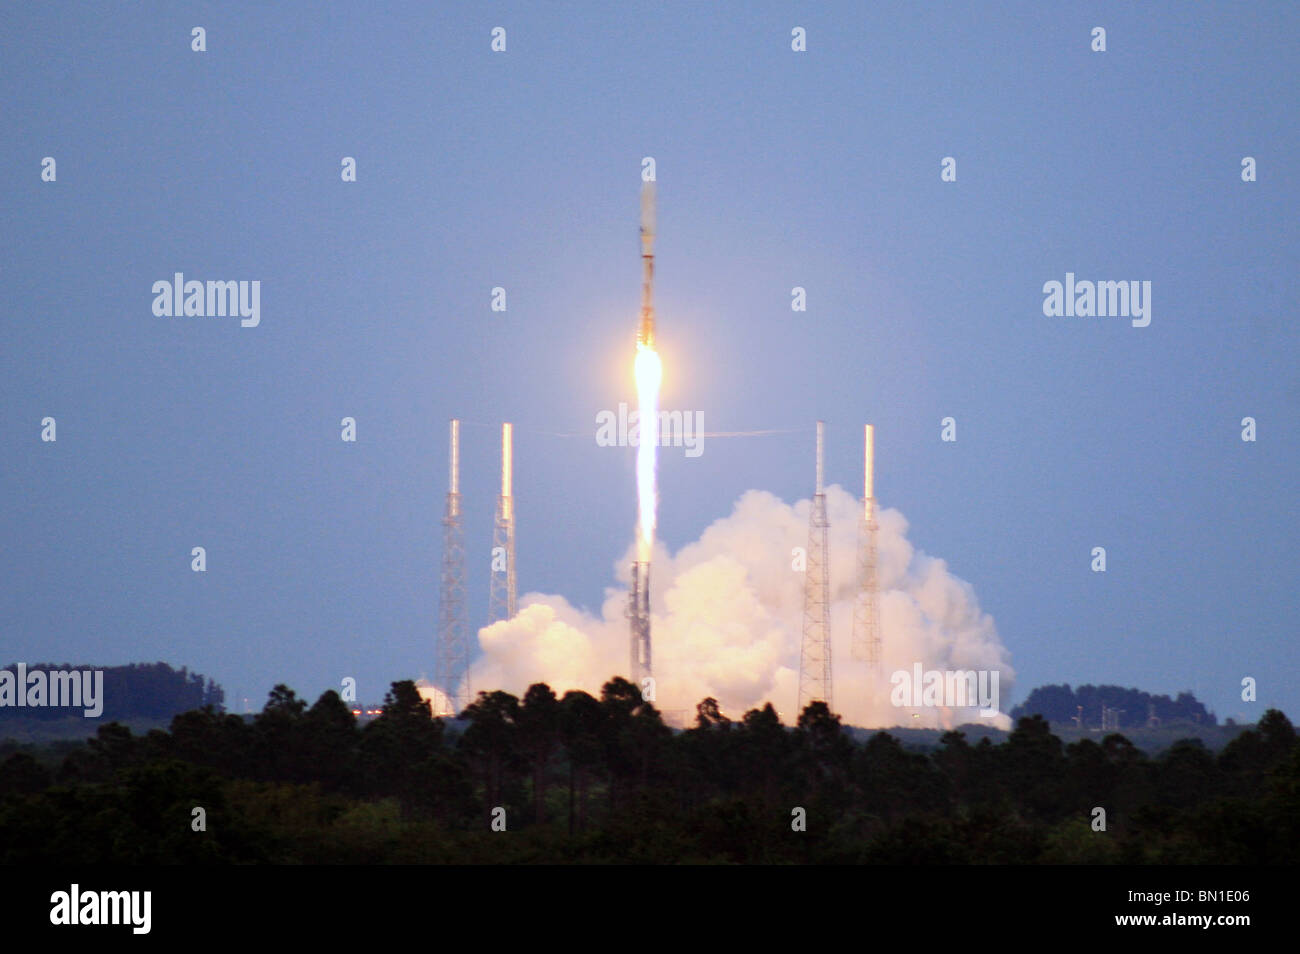 The X-37B Orbital Test Vehicle makes its first space flight aboard an Atlas V rocket April 22, 2010 - Stock Image